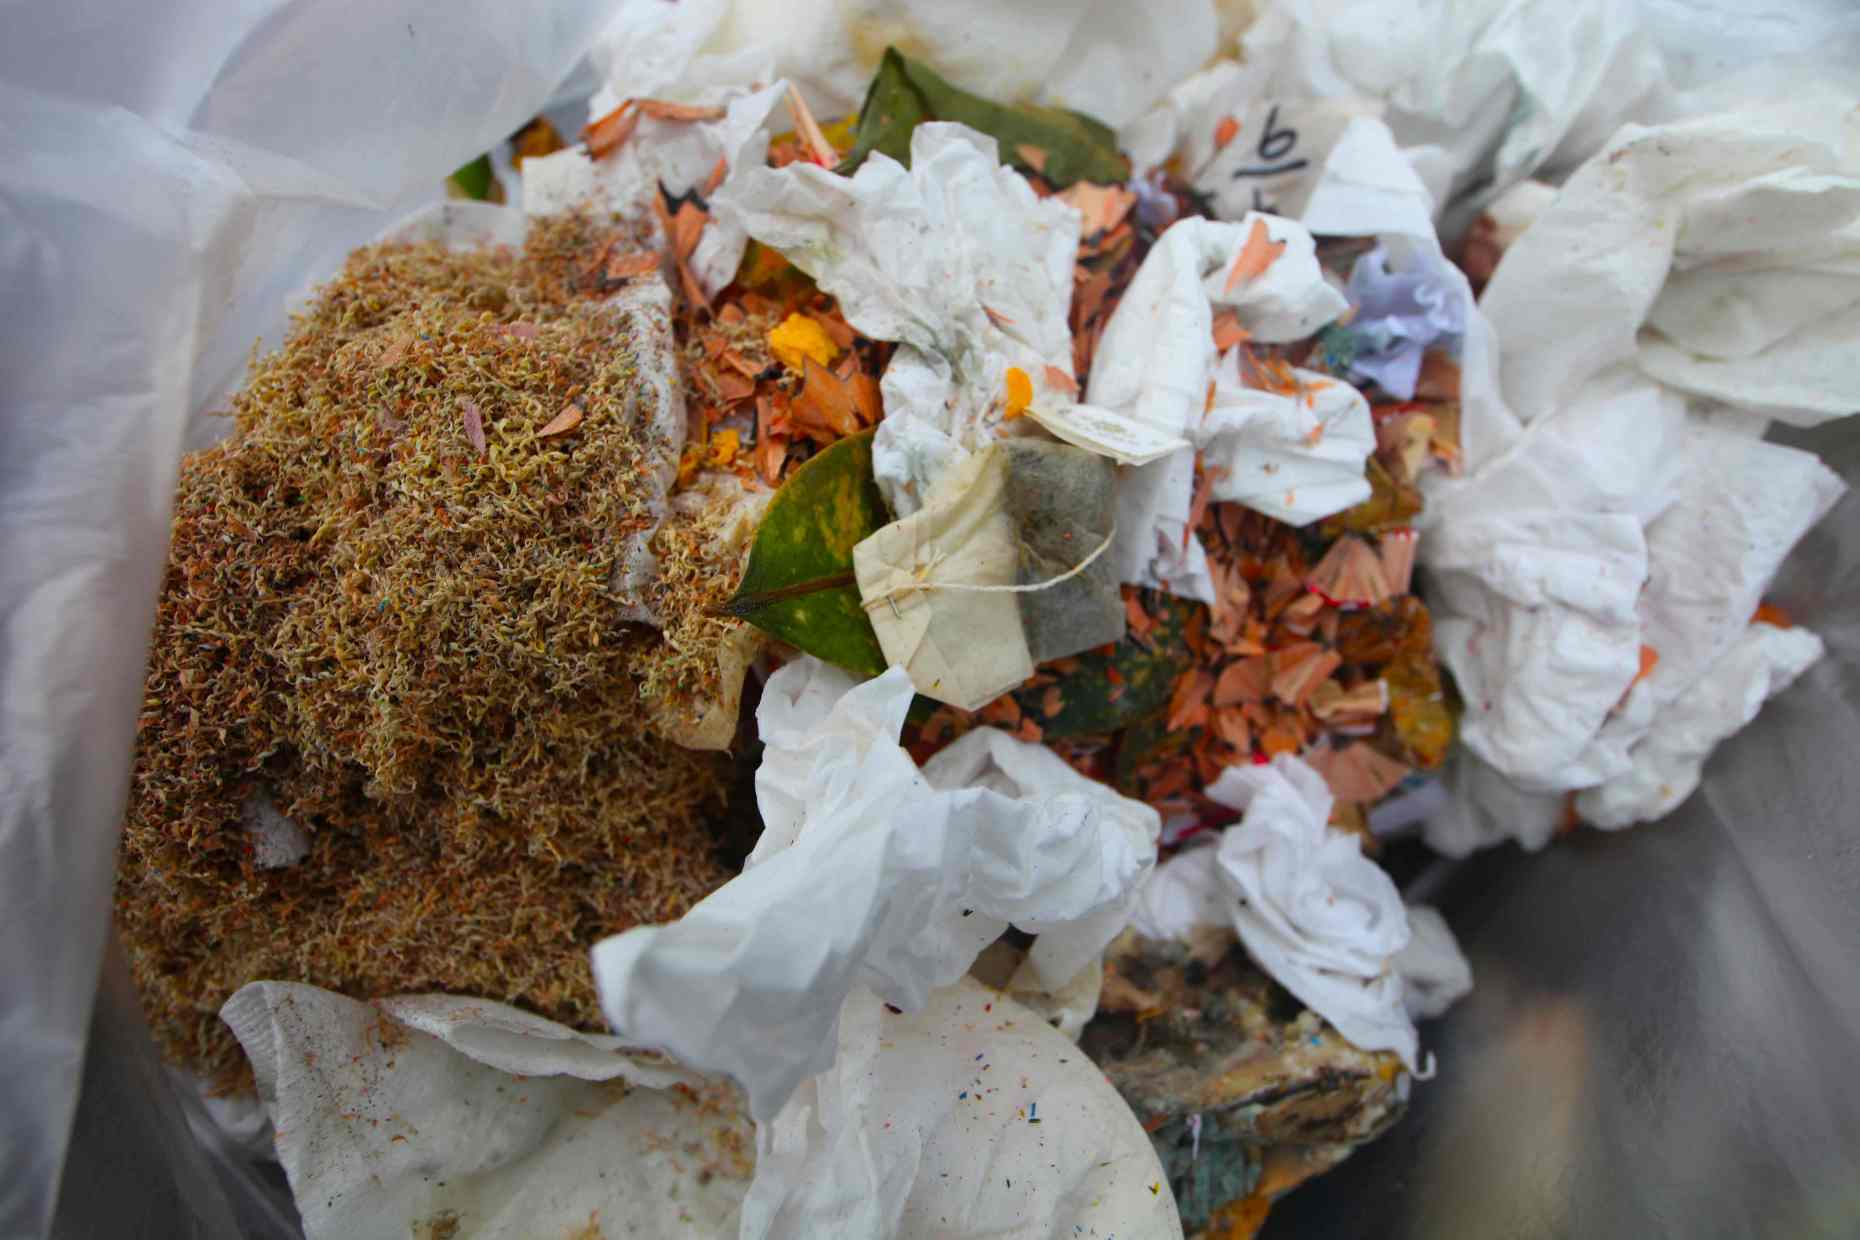 Compostables Found in the Trash.